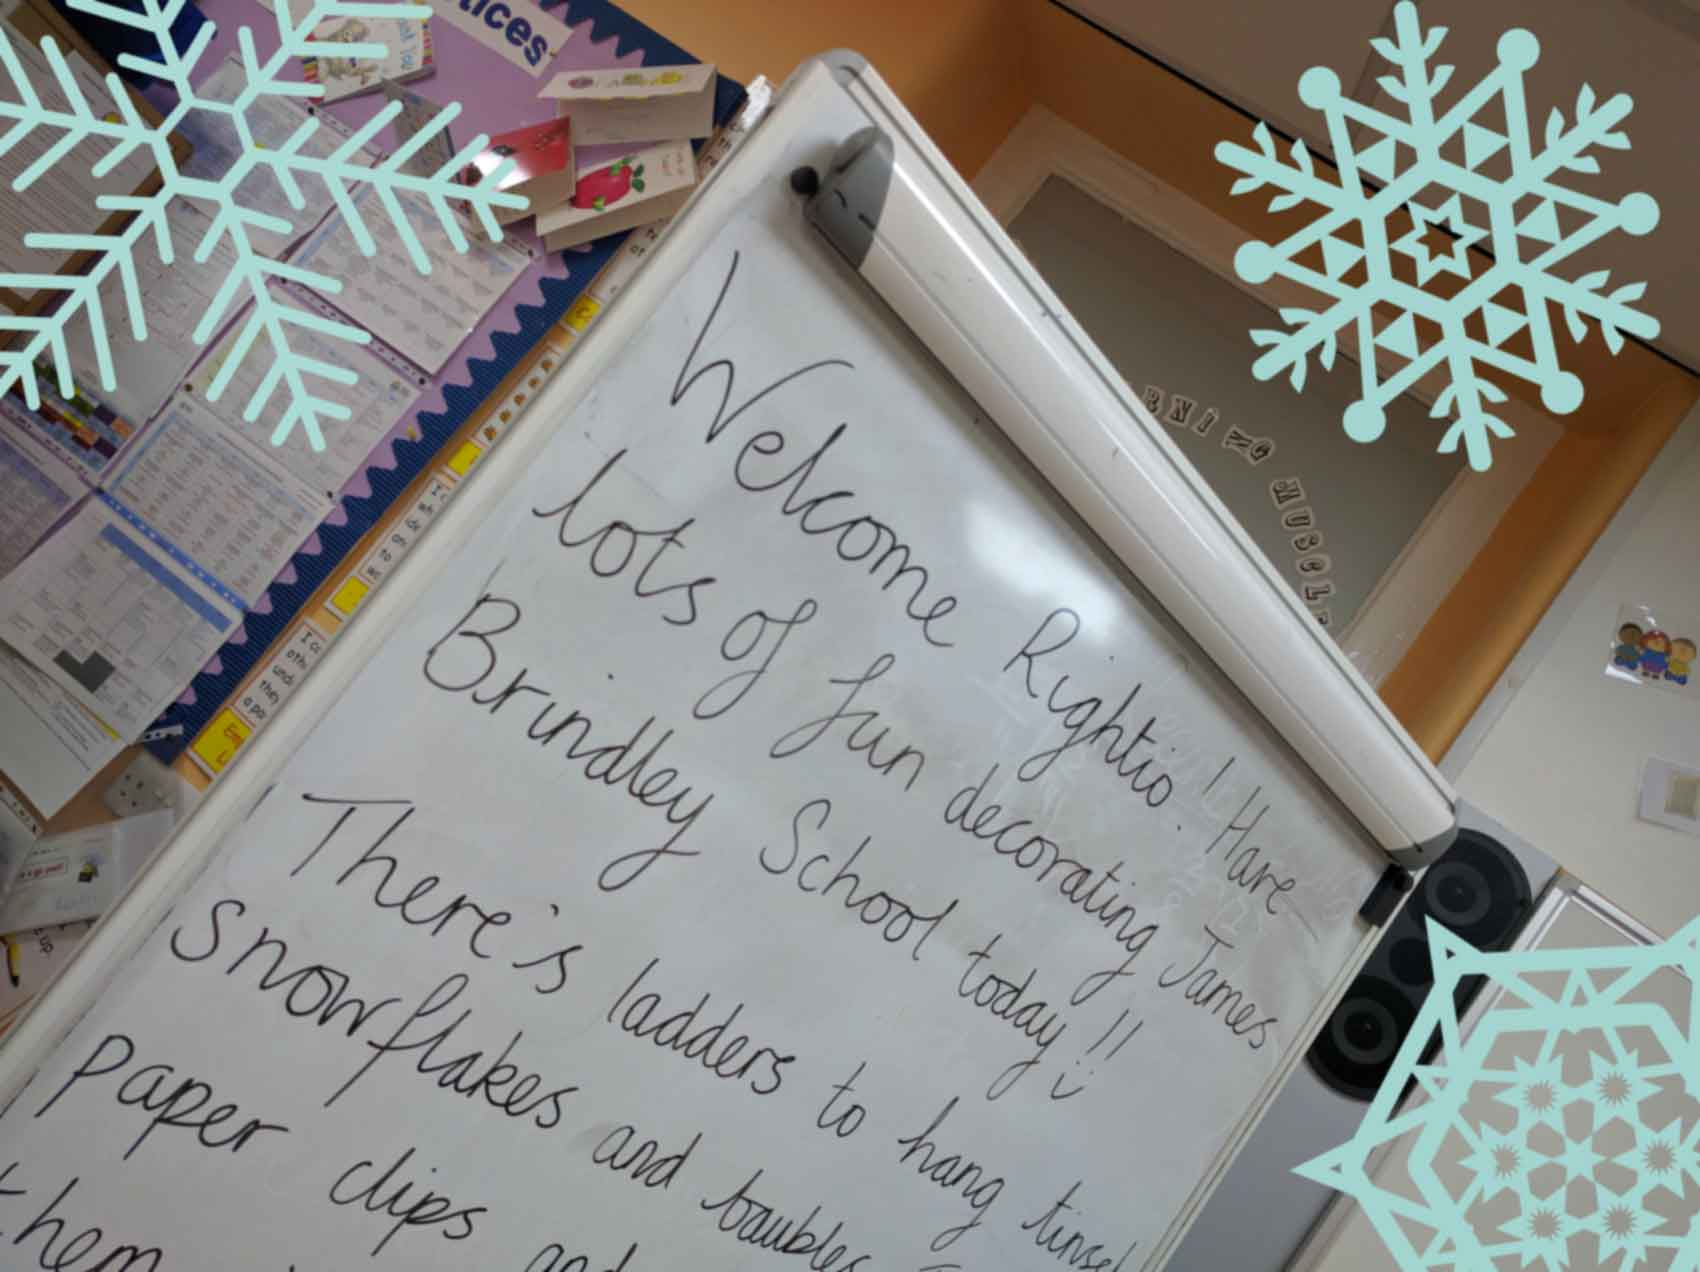 white board in school classroom surrounded by snowflakes